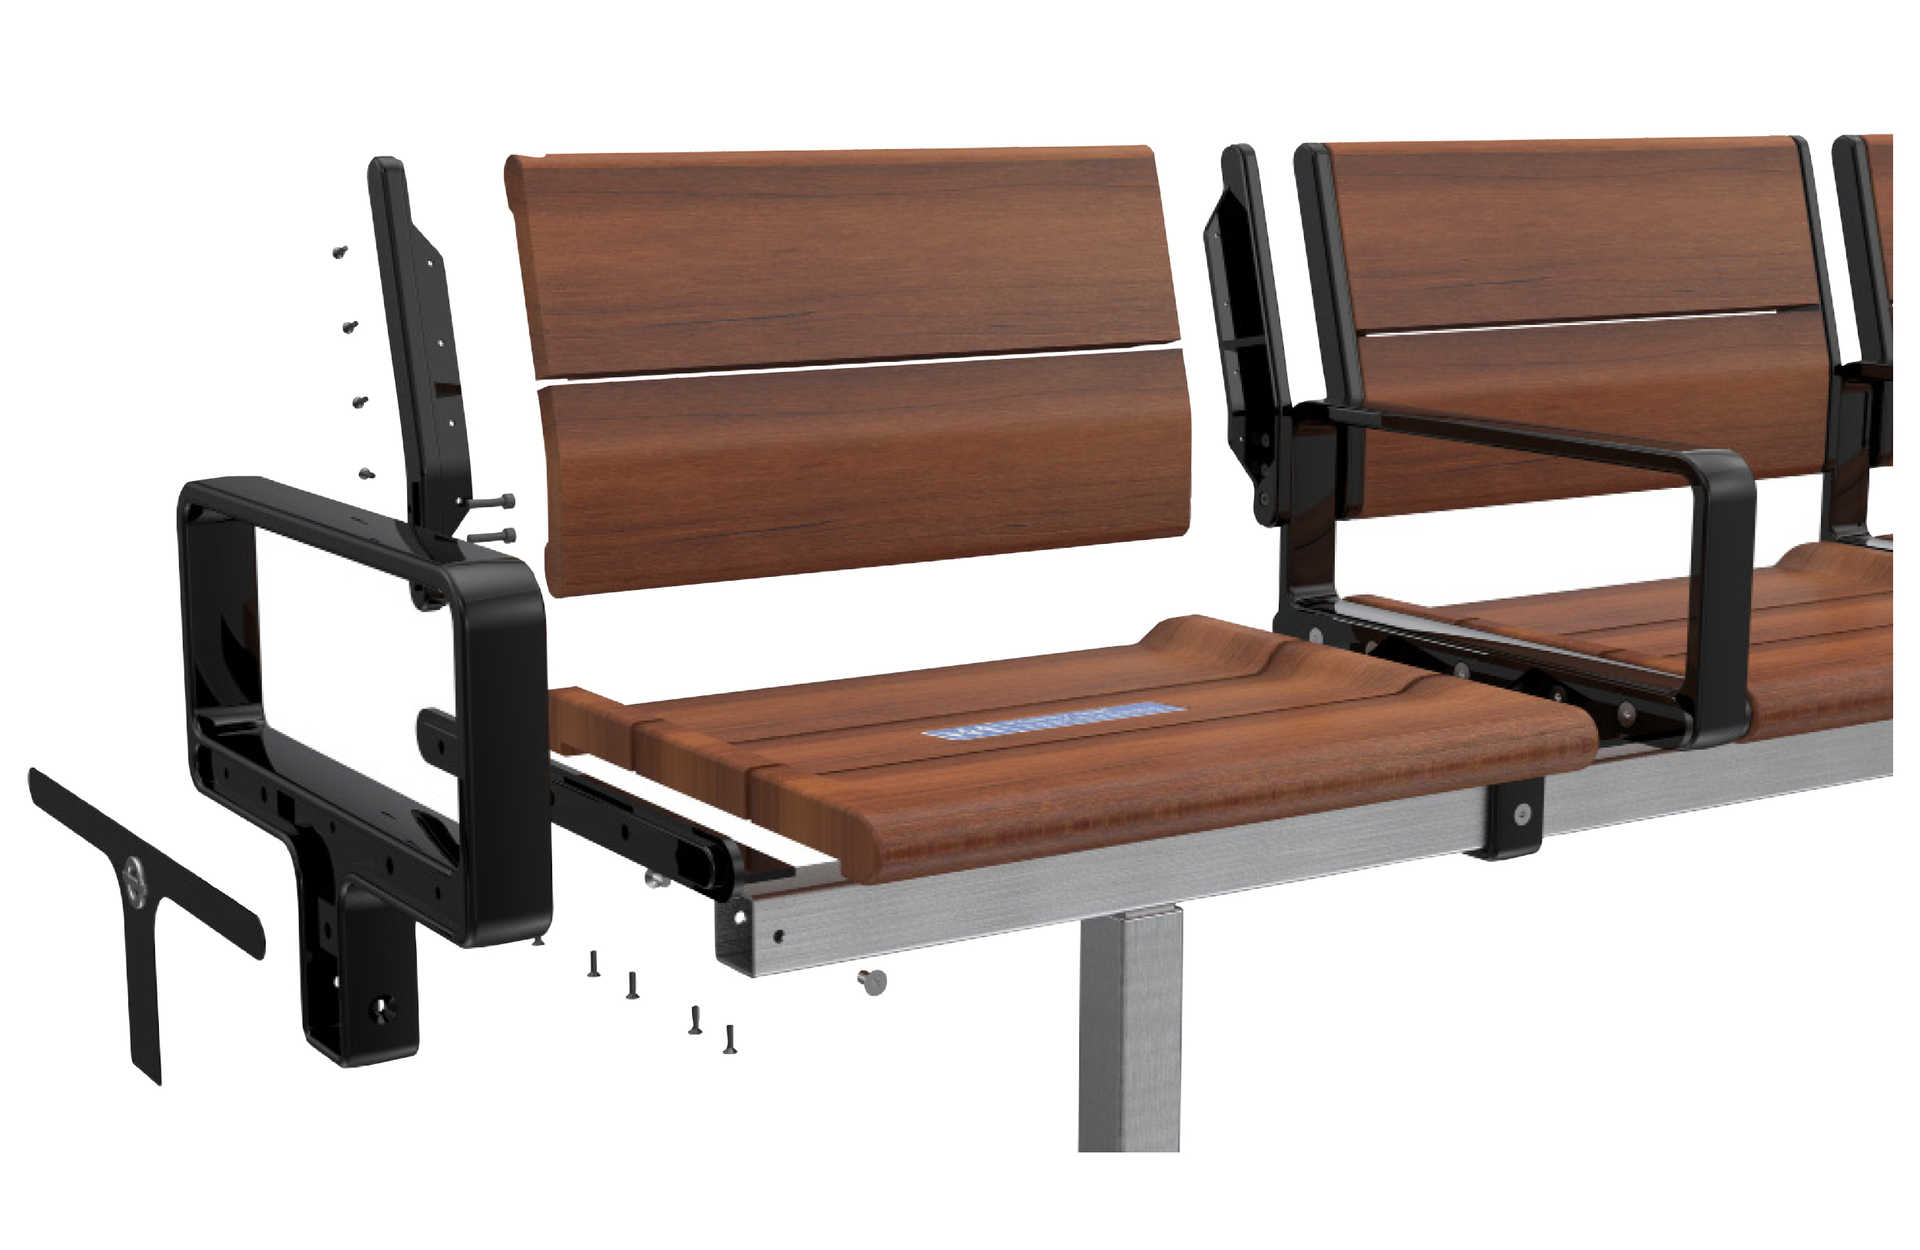 Design prototype of new timber seats for the Elizabeth line_236334